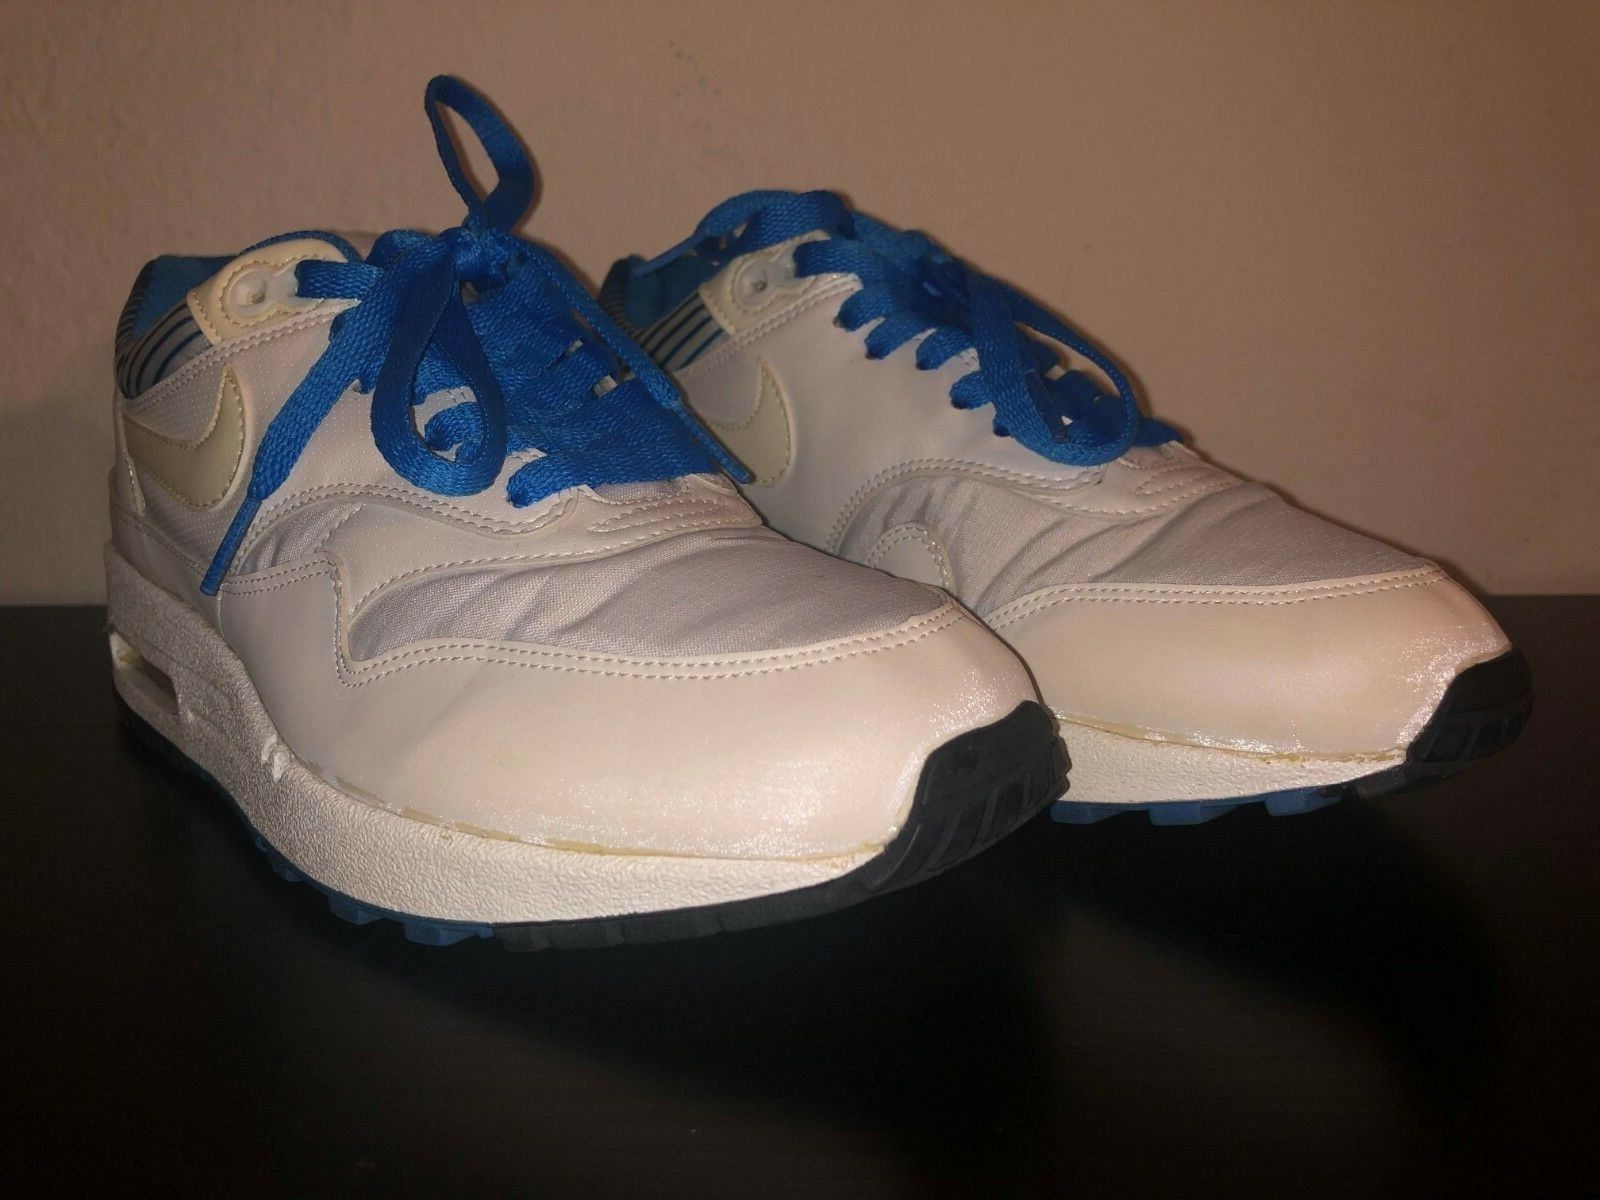 Nike Air Max 1 2007 Premium SP (Euro Champs Pack) Size 6.5